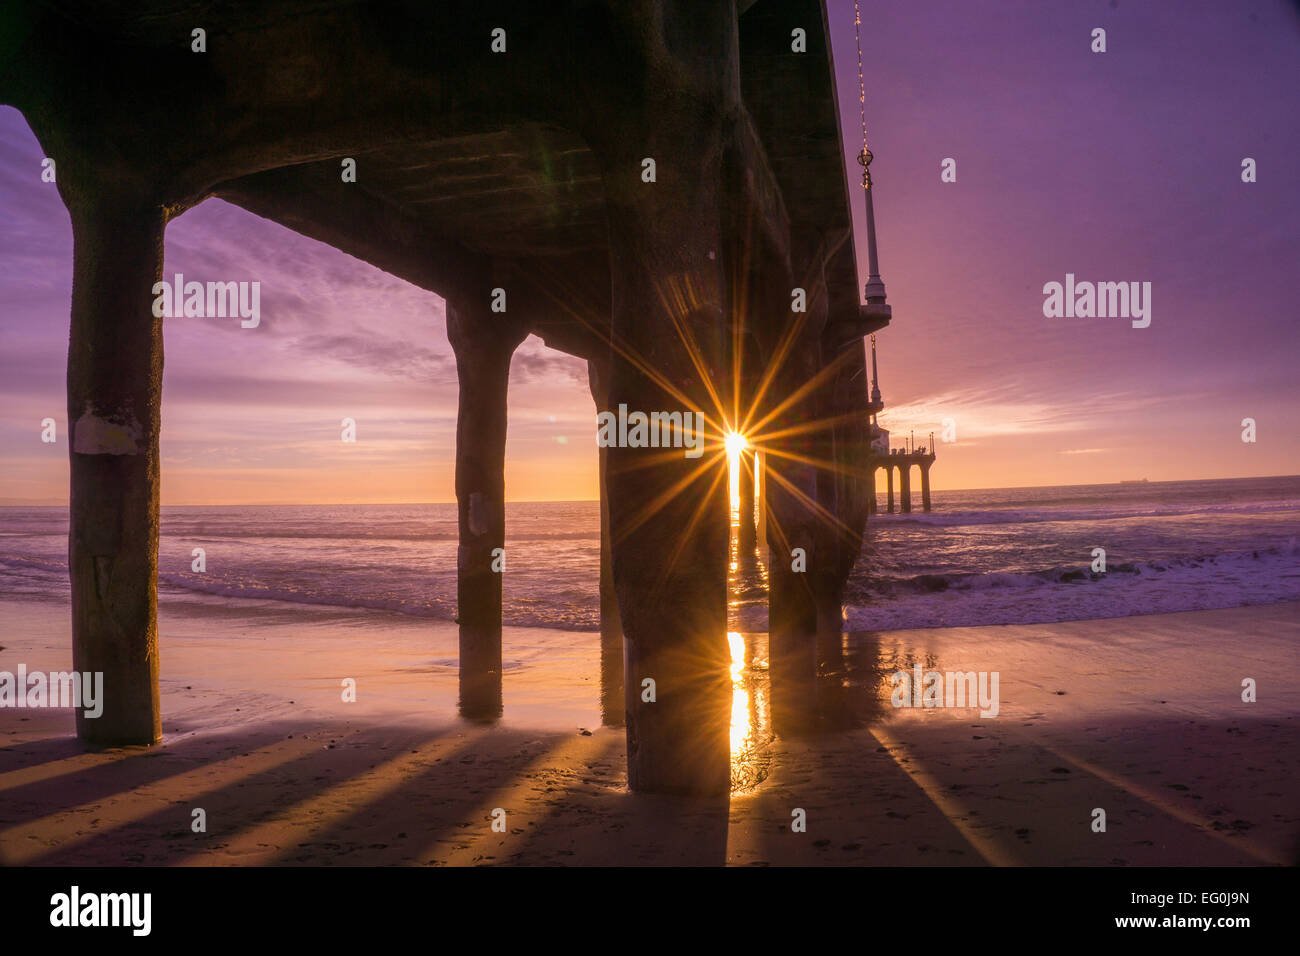 USA, California, Manhattan Beach, Sunbeam coming through pier construction, purple sky - Stock Image